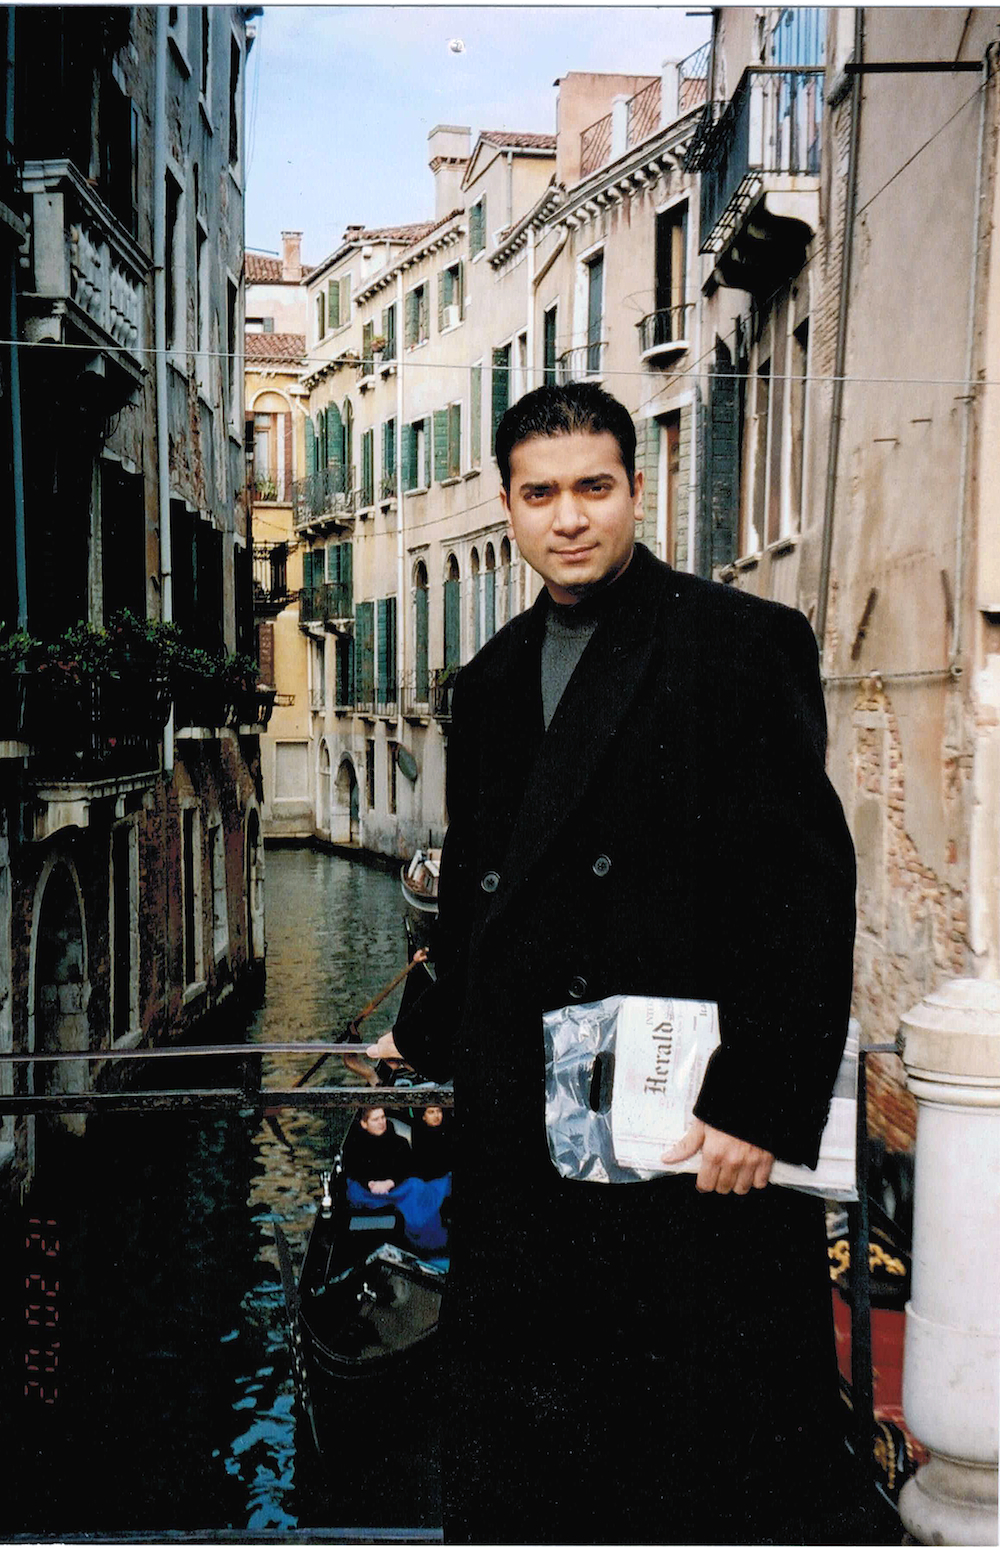 Sam Jain in Venice, Italy in December 2002 - now CEO of CheapOair and FarePortal